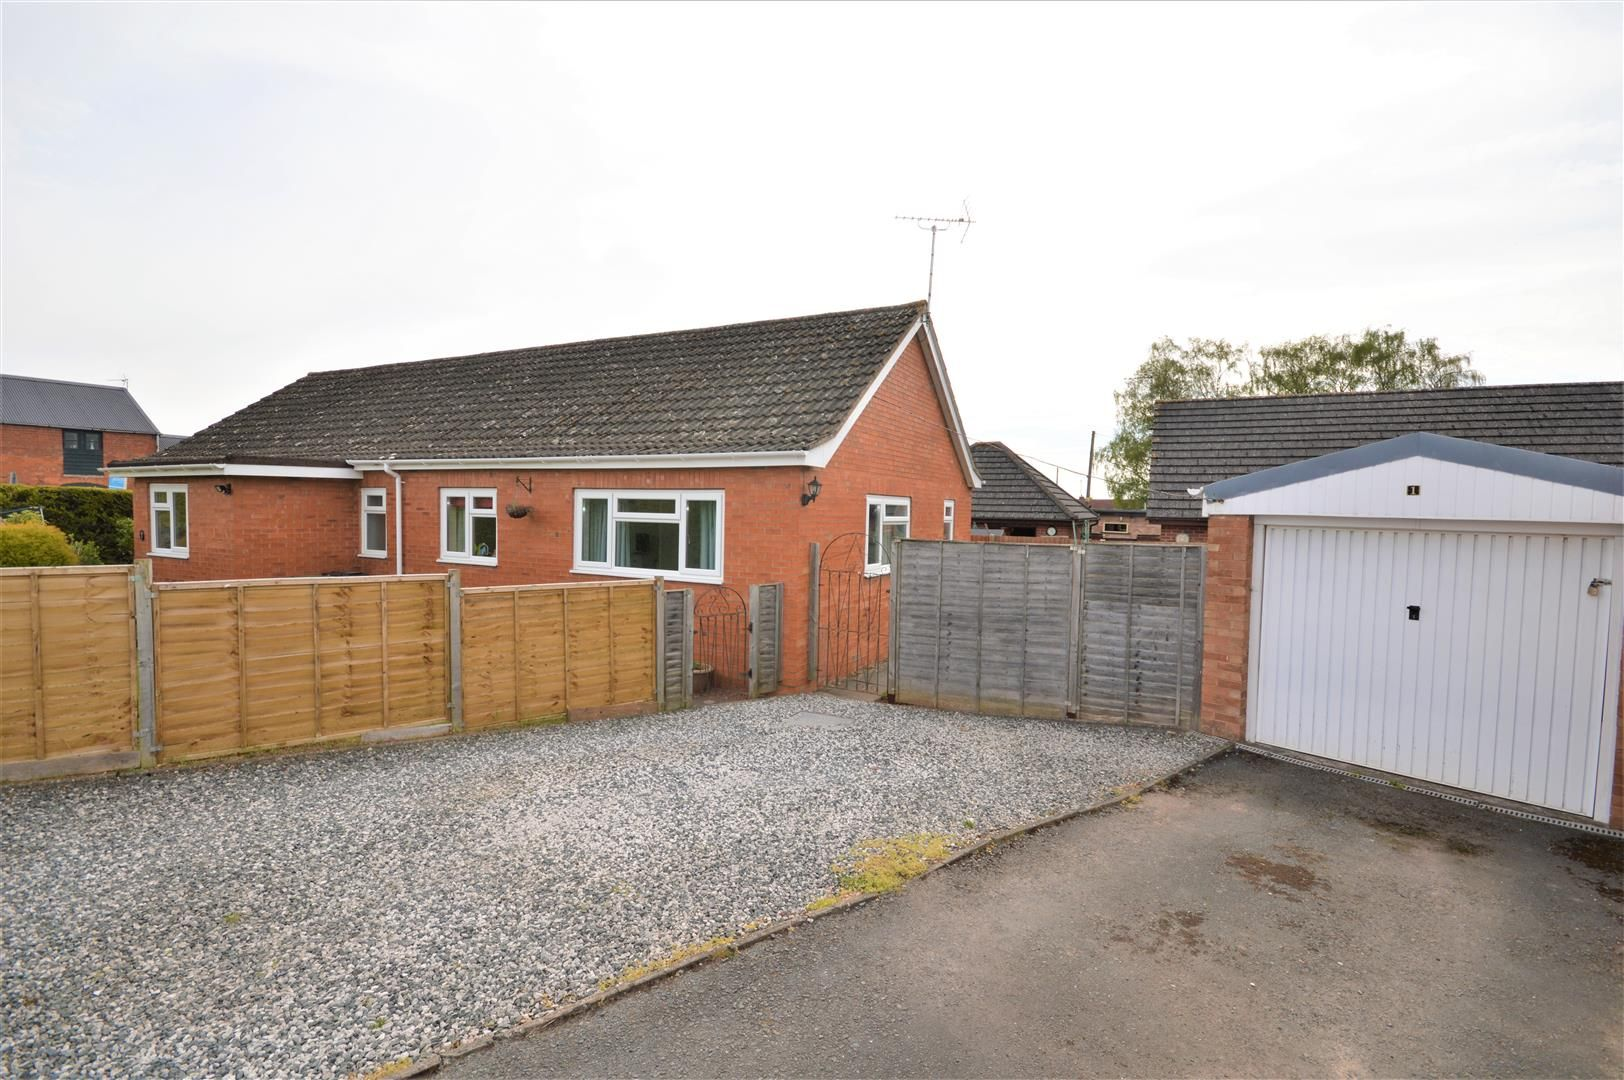 4 bed detached-bungalow for sale in Marden  - Property Image 3